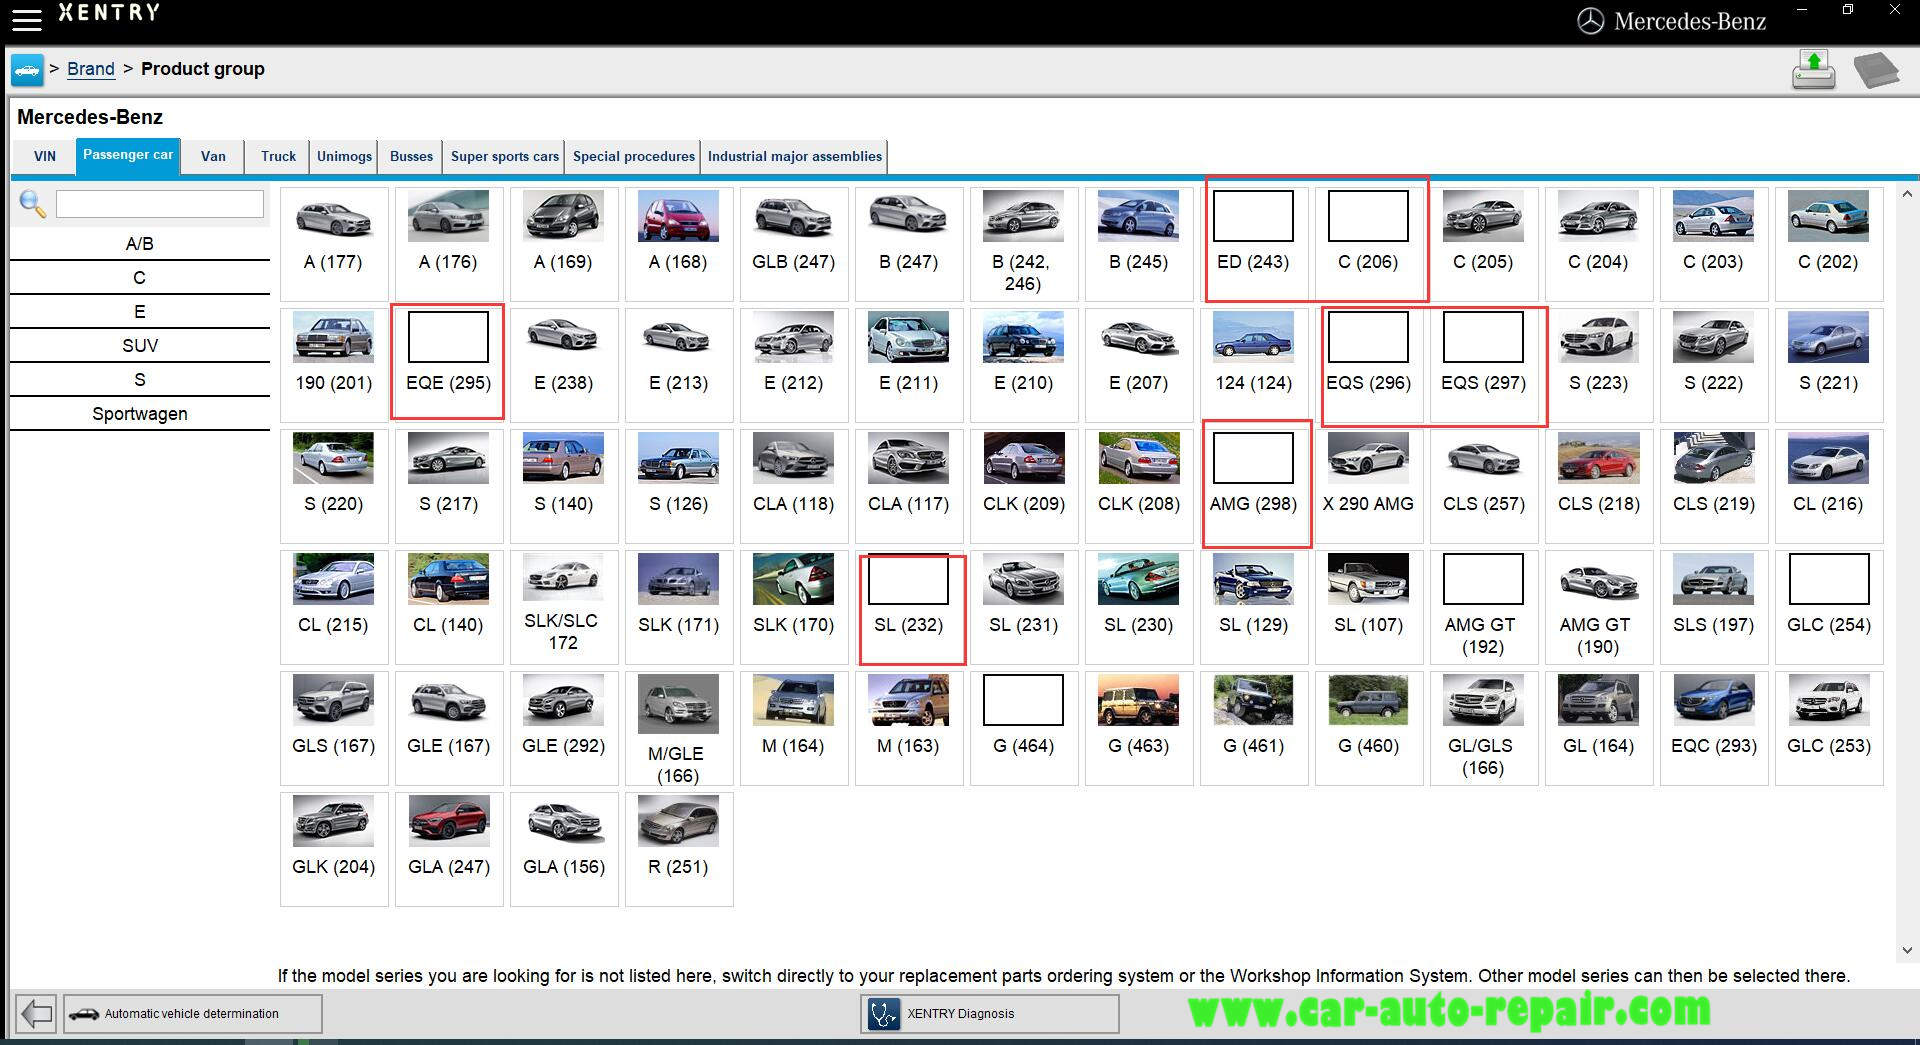 How-to-Fix-Benz-Xentry-Missing-Pictures-Problem-1